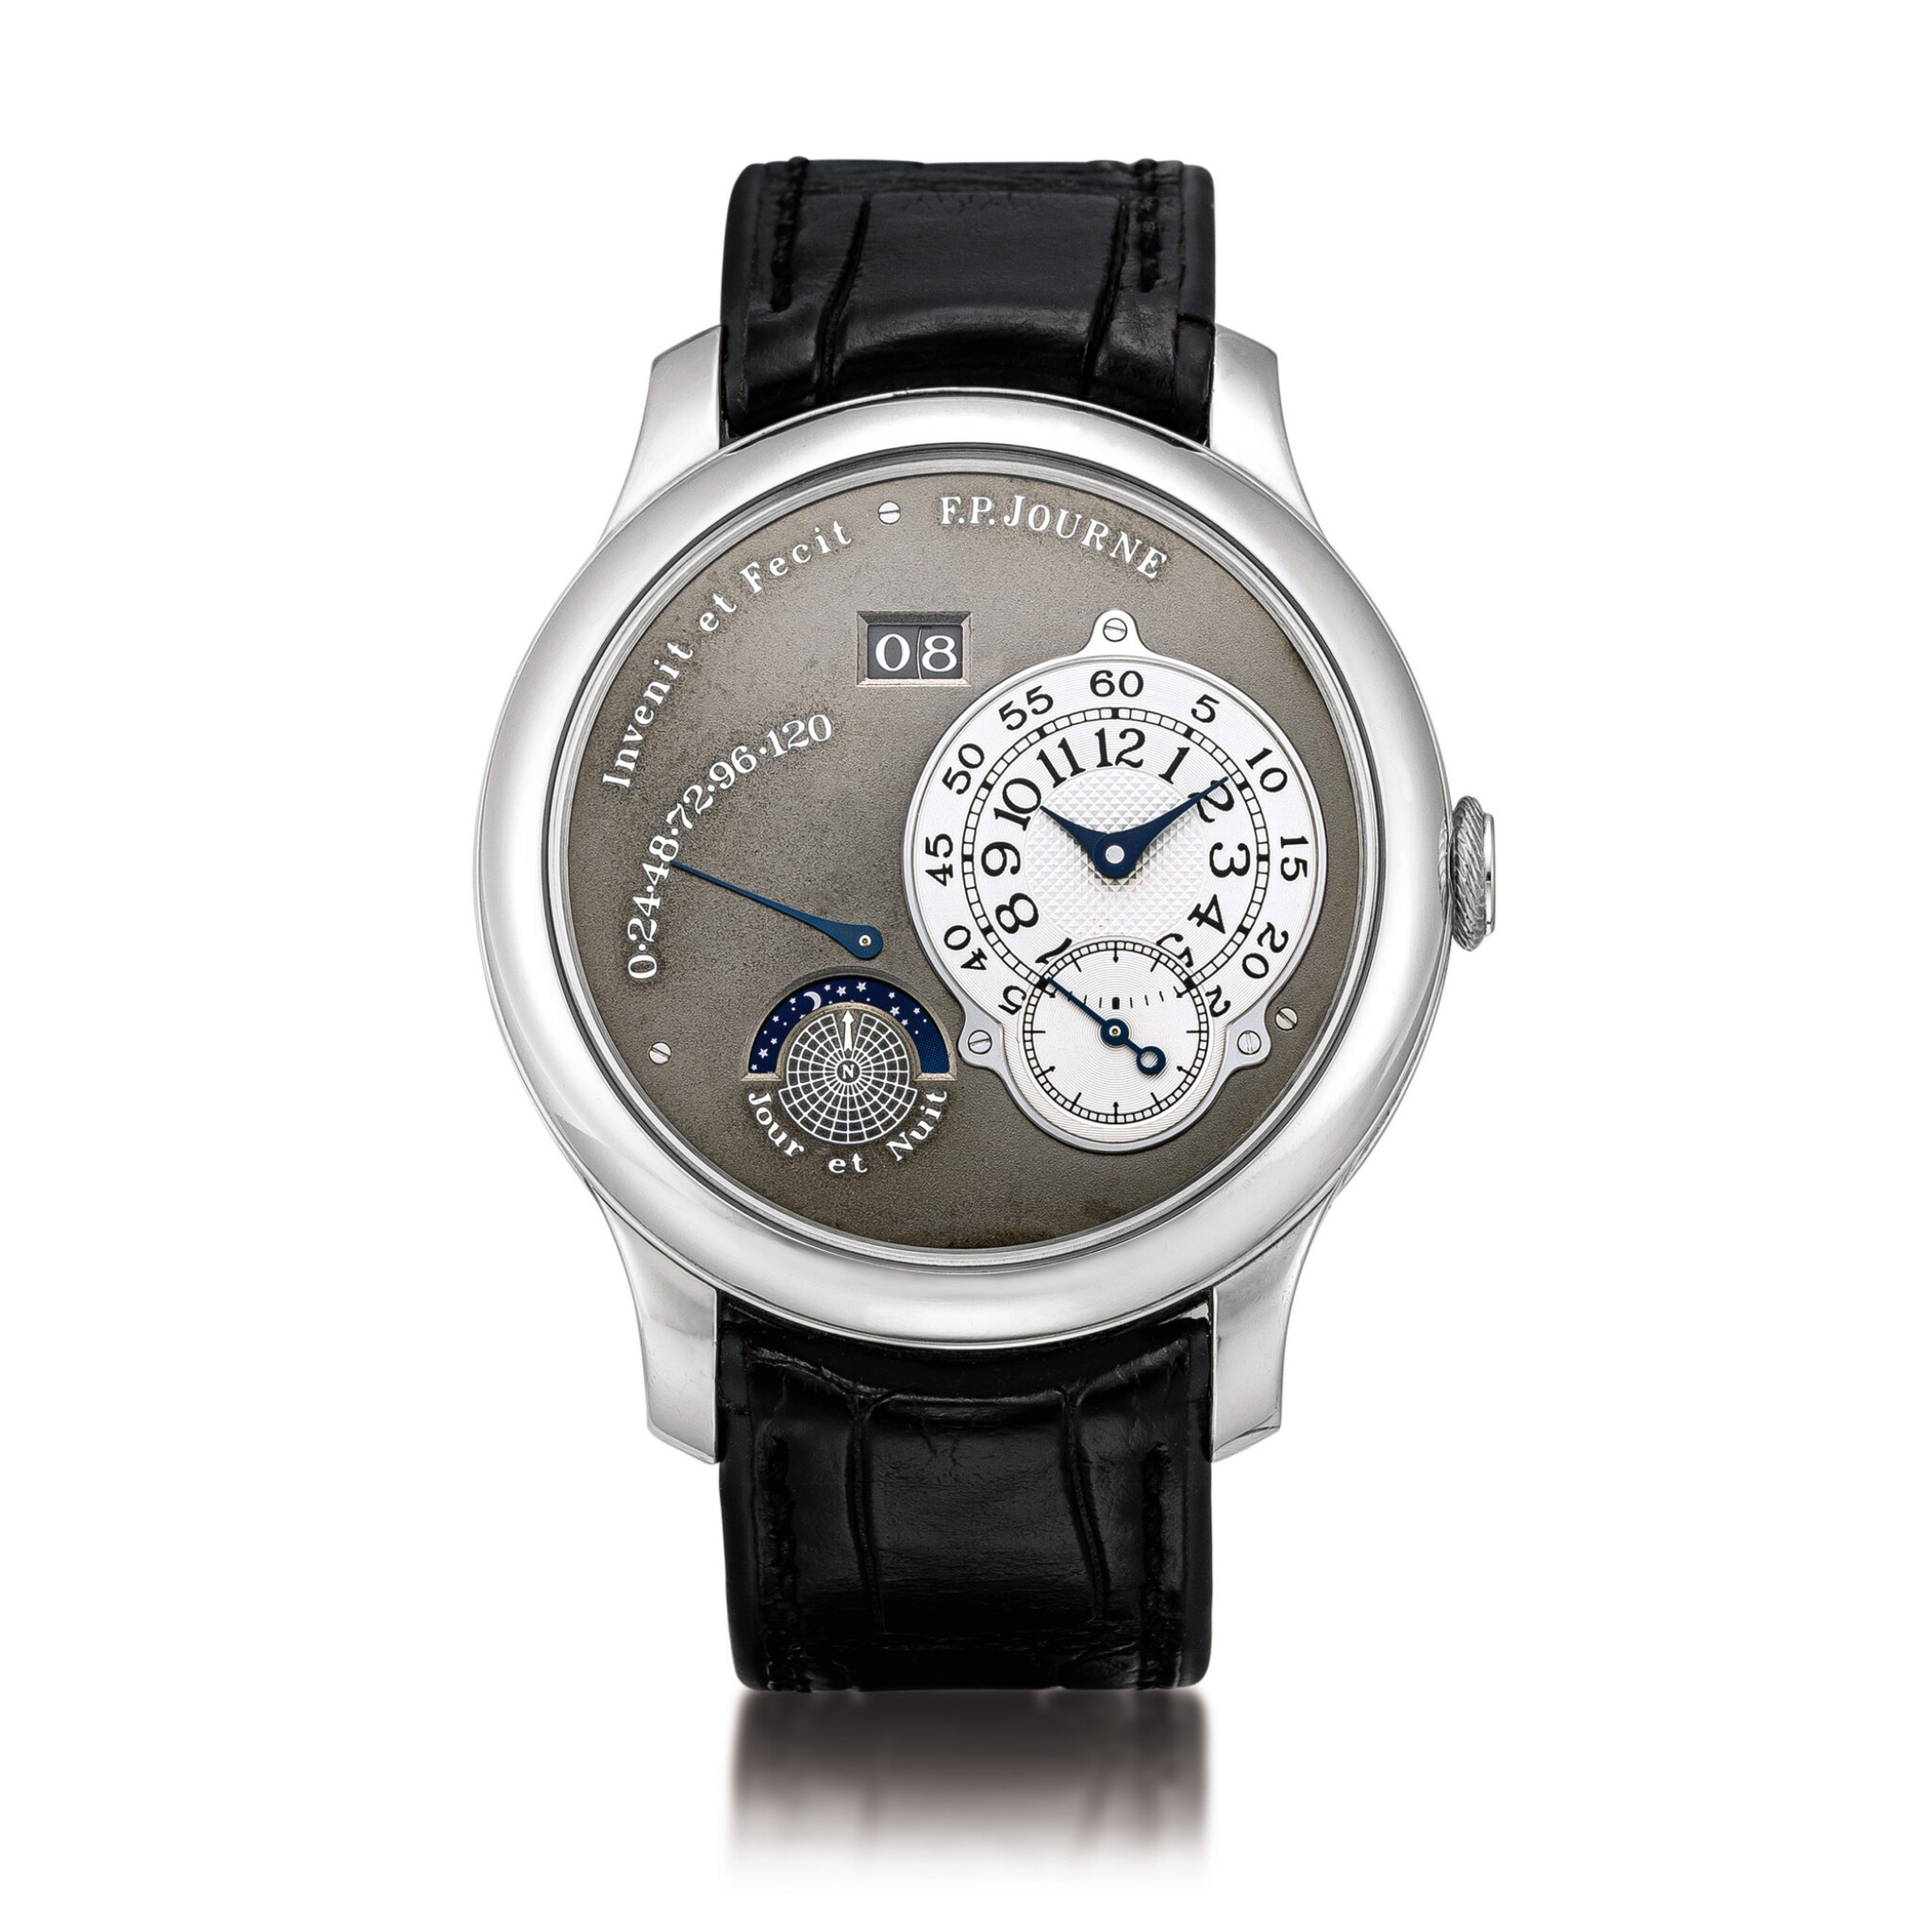 View full screen - View 1 of Lot 2218. F.P. Journe | Octa Jour et Nuit, A limited edition platinum wristwatch with ruthenium dial, ruthenium-coated brass movement, date, power reserve and day and night indication, Circa 2003 | Octa Jour et Nuit  限量版鉑金腕錶,備釕金屬錶盤、釕金屬塗層銅製機芯、日期、動力儲備及晝夜顯示,約2003年製.